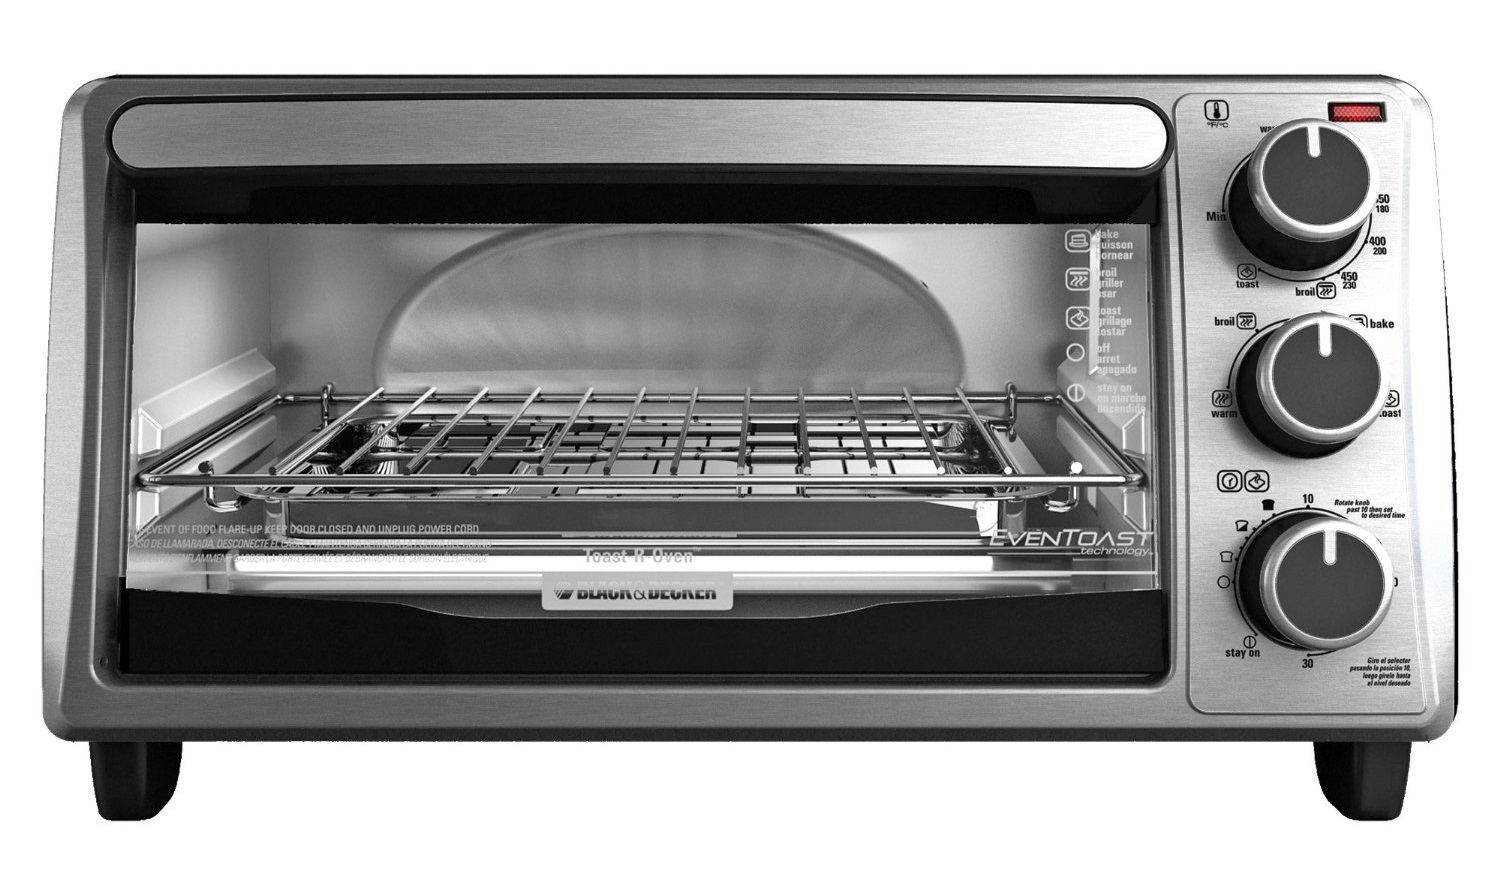 The Best Toaster Oven Top 5 Models & Other Toaster Oven Reviews